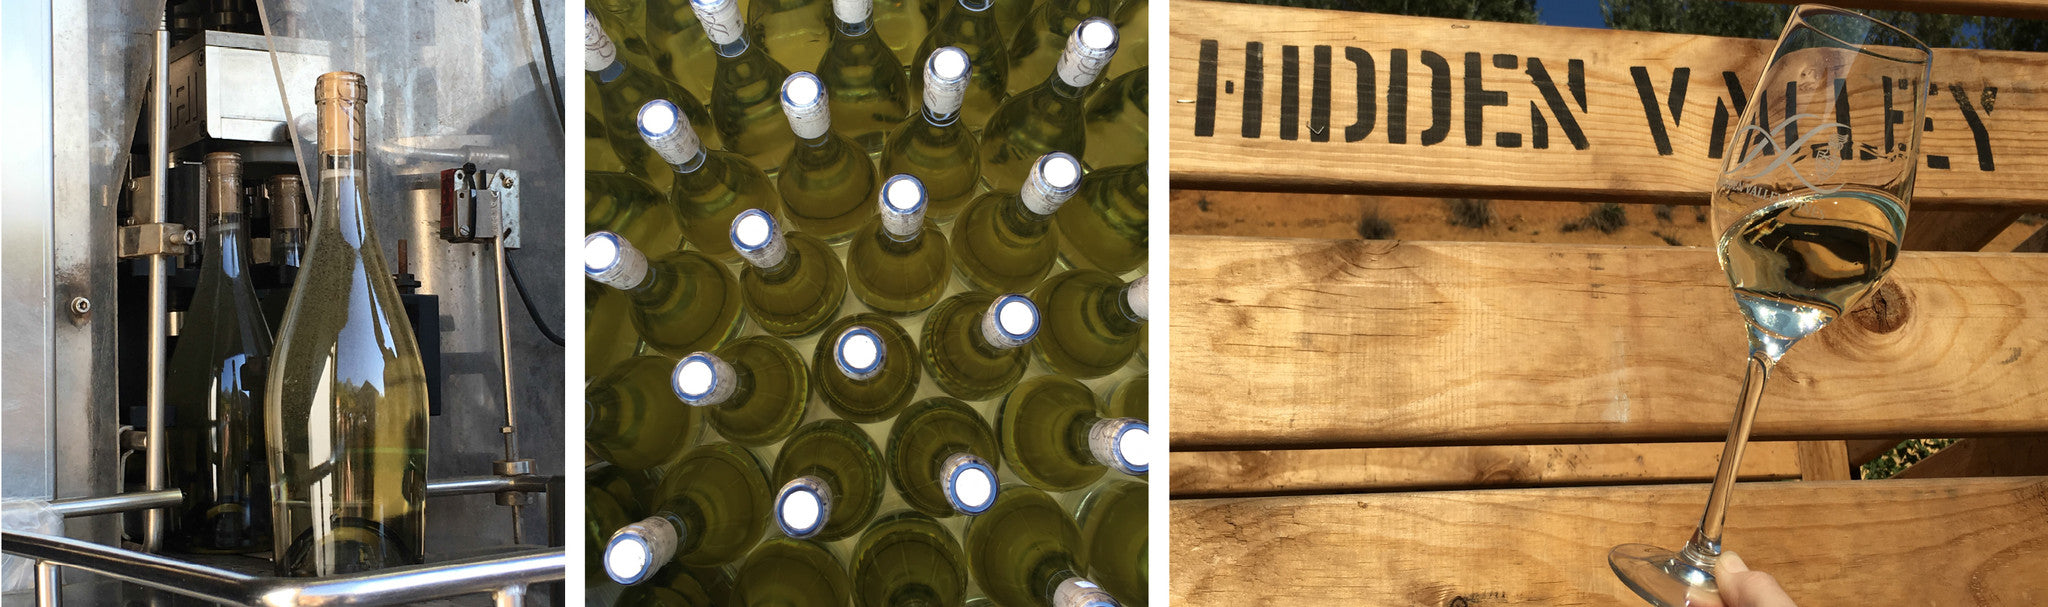 Sauvignon Blanc 2016 Bottling in Pictures